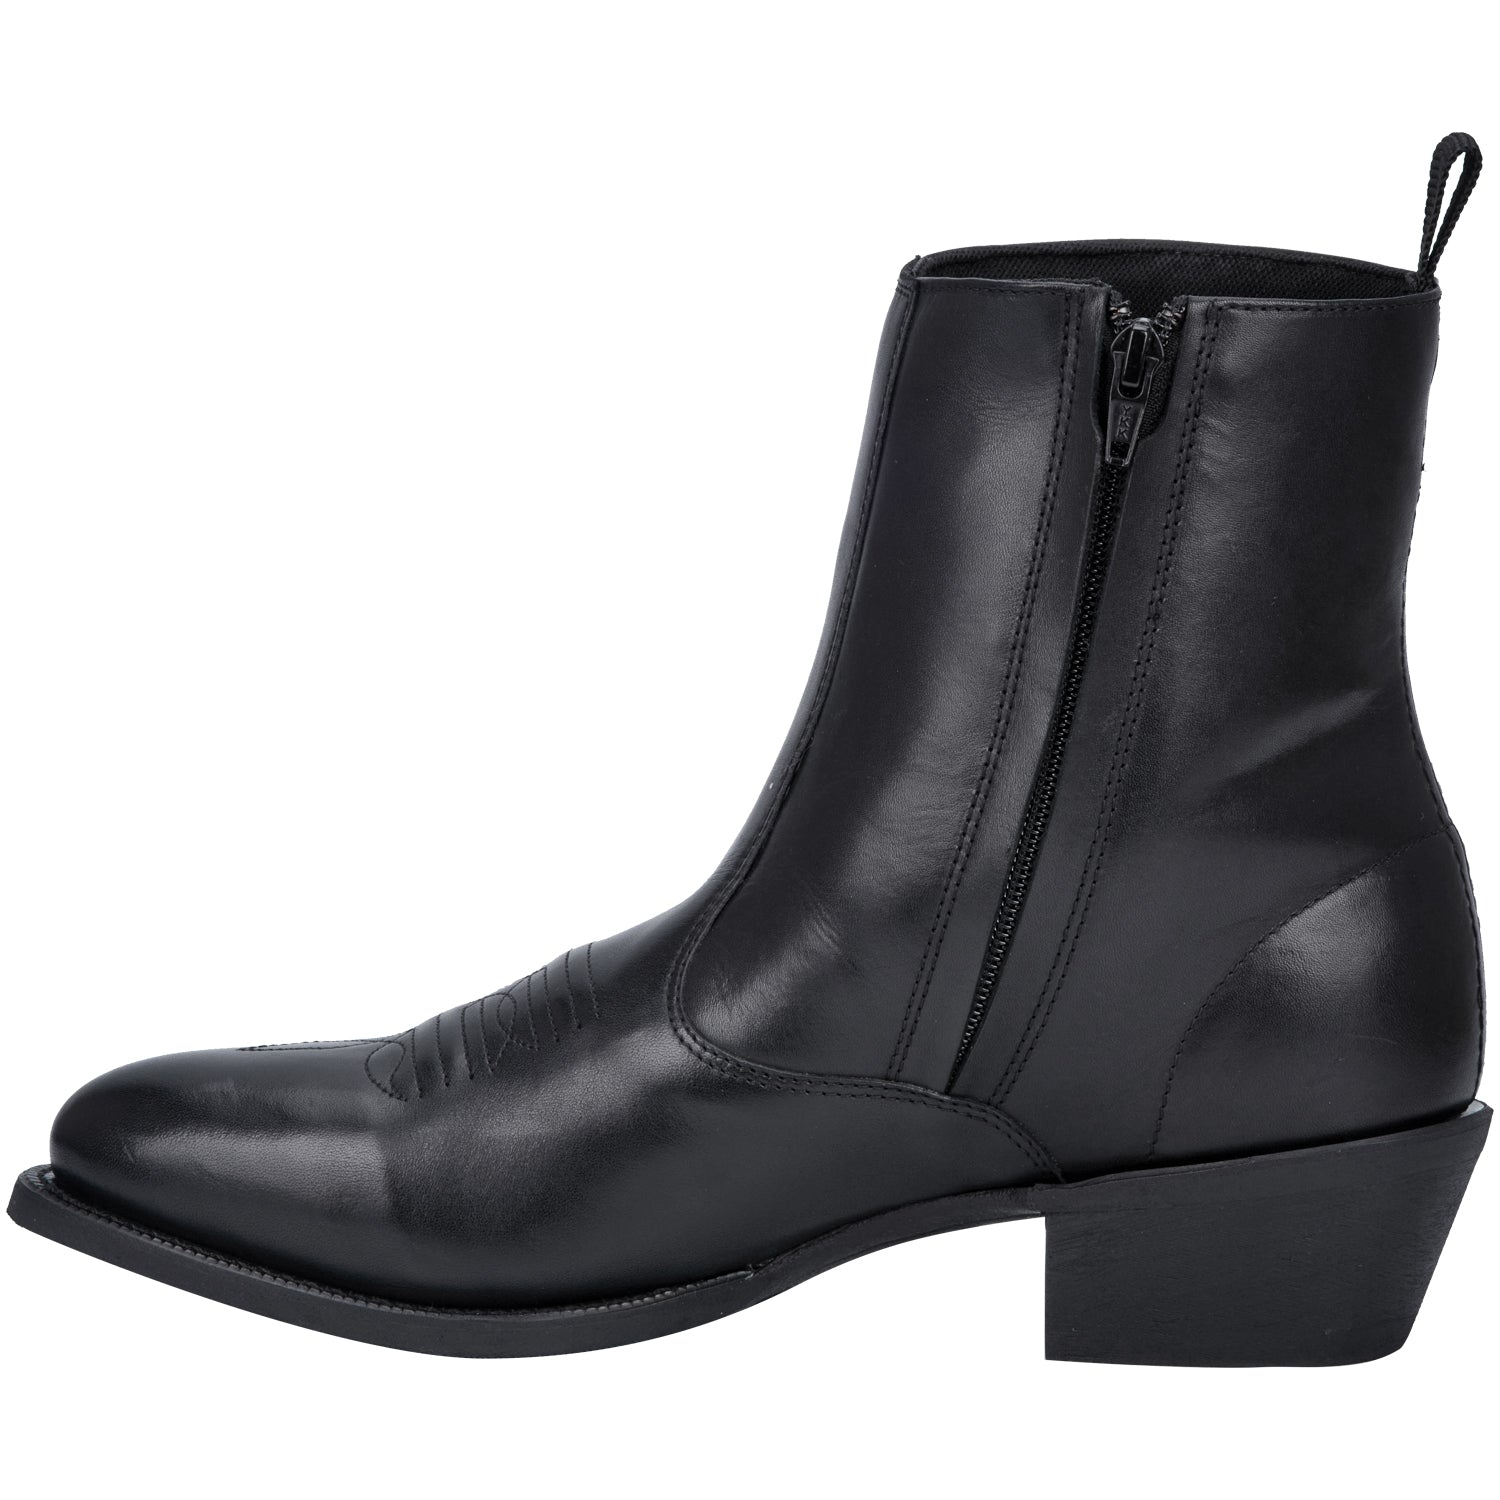 FLETCHER LEATHER BOOT 5789471670314